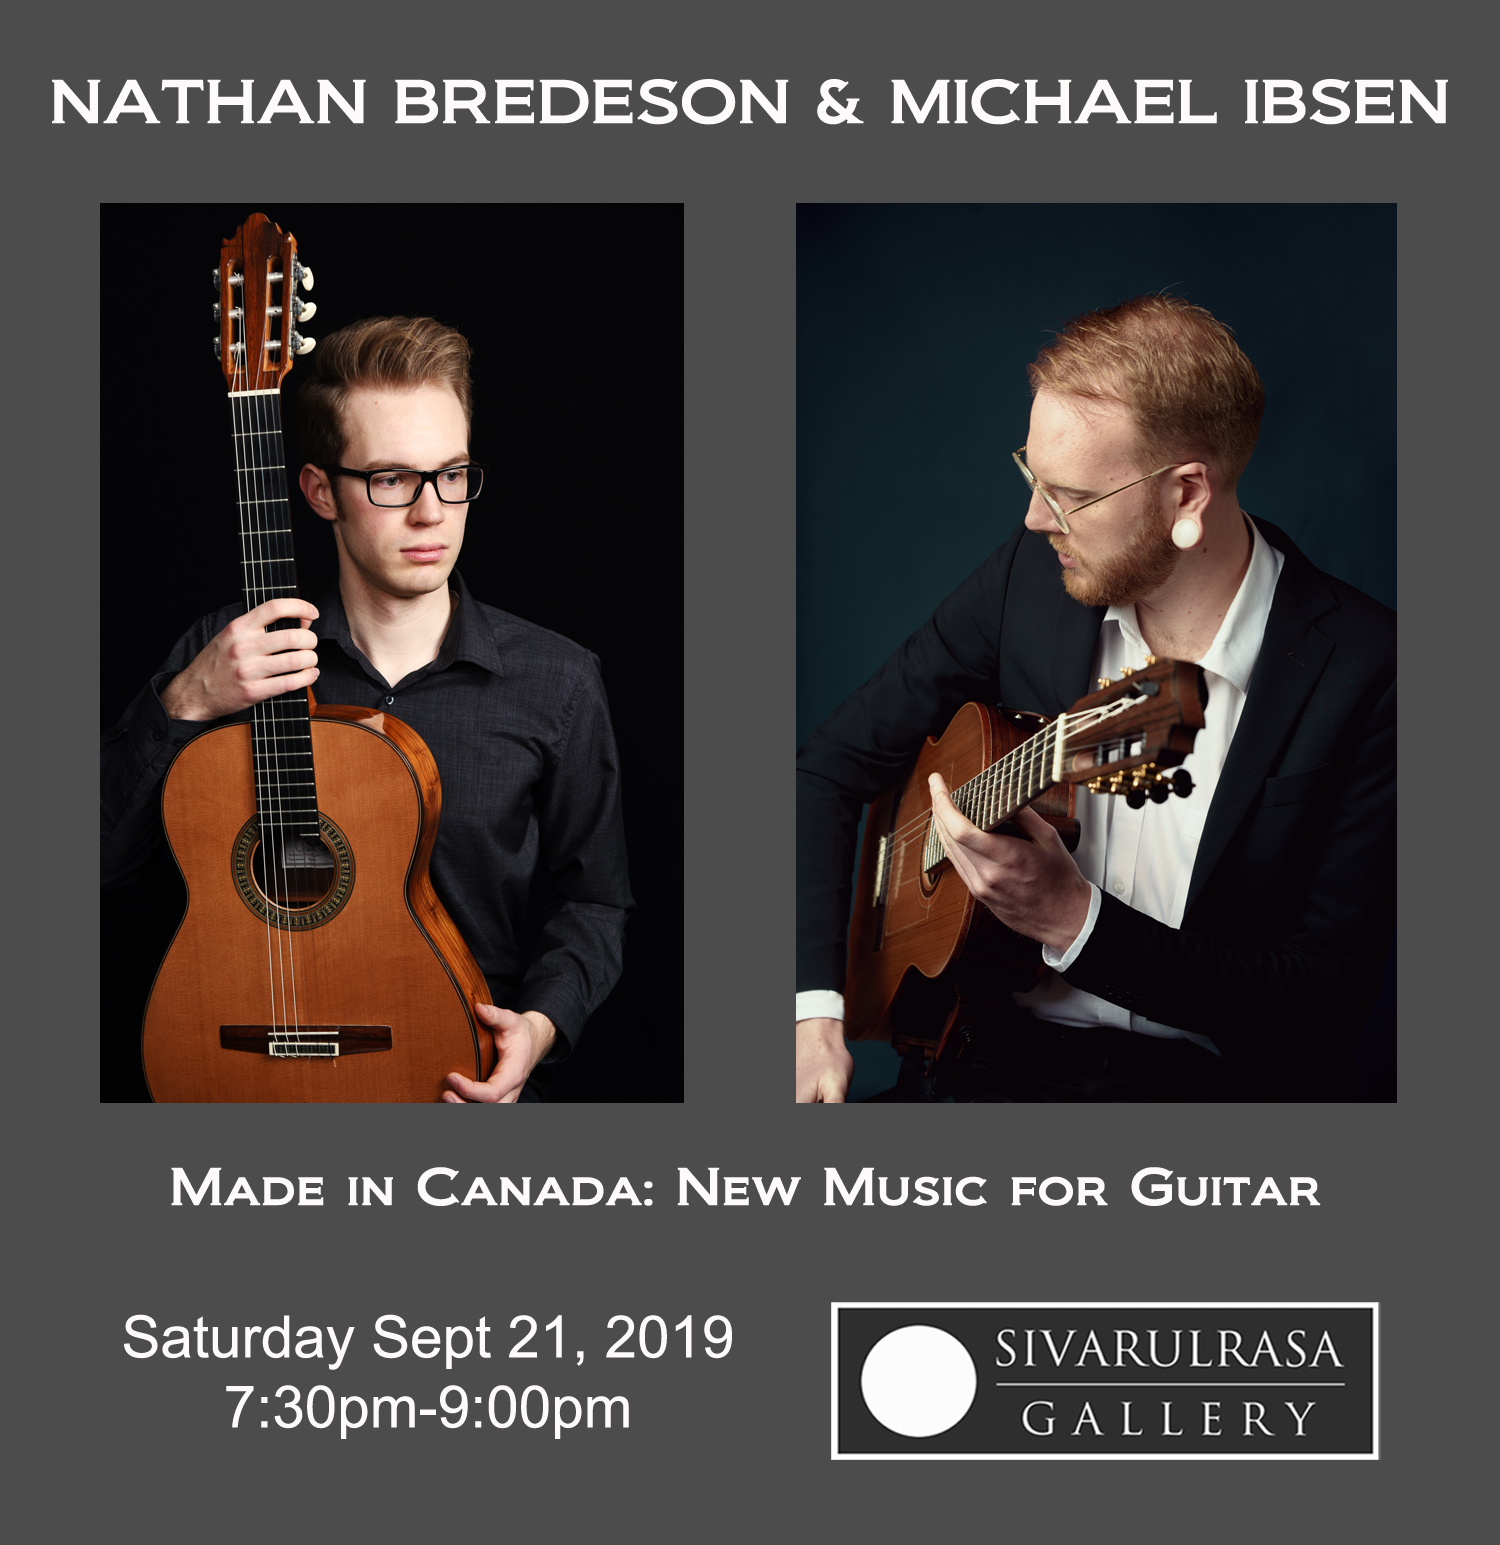 Nathan Bredesen and Michael Ibsen at Culture22, Sivarulrasa Gallery